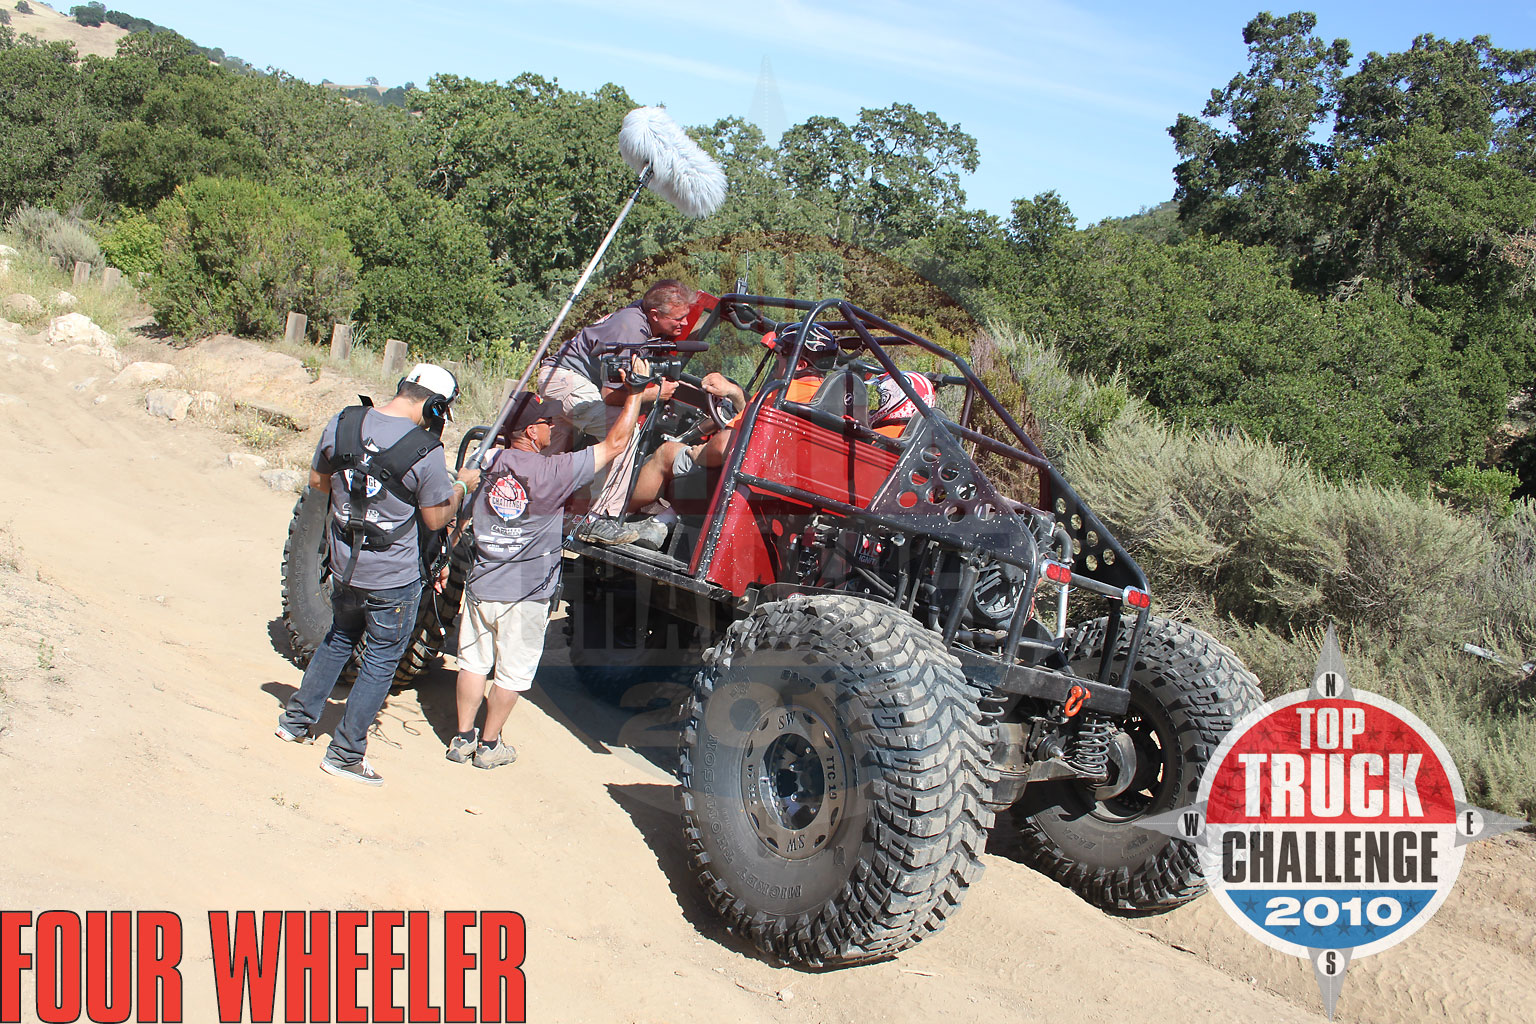 2010 Top Truck Challenge Frame Twister Pj Hale 1948 Willys Buggy